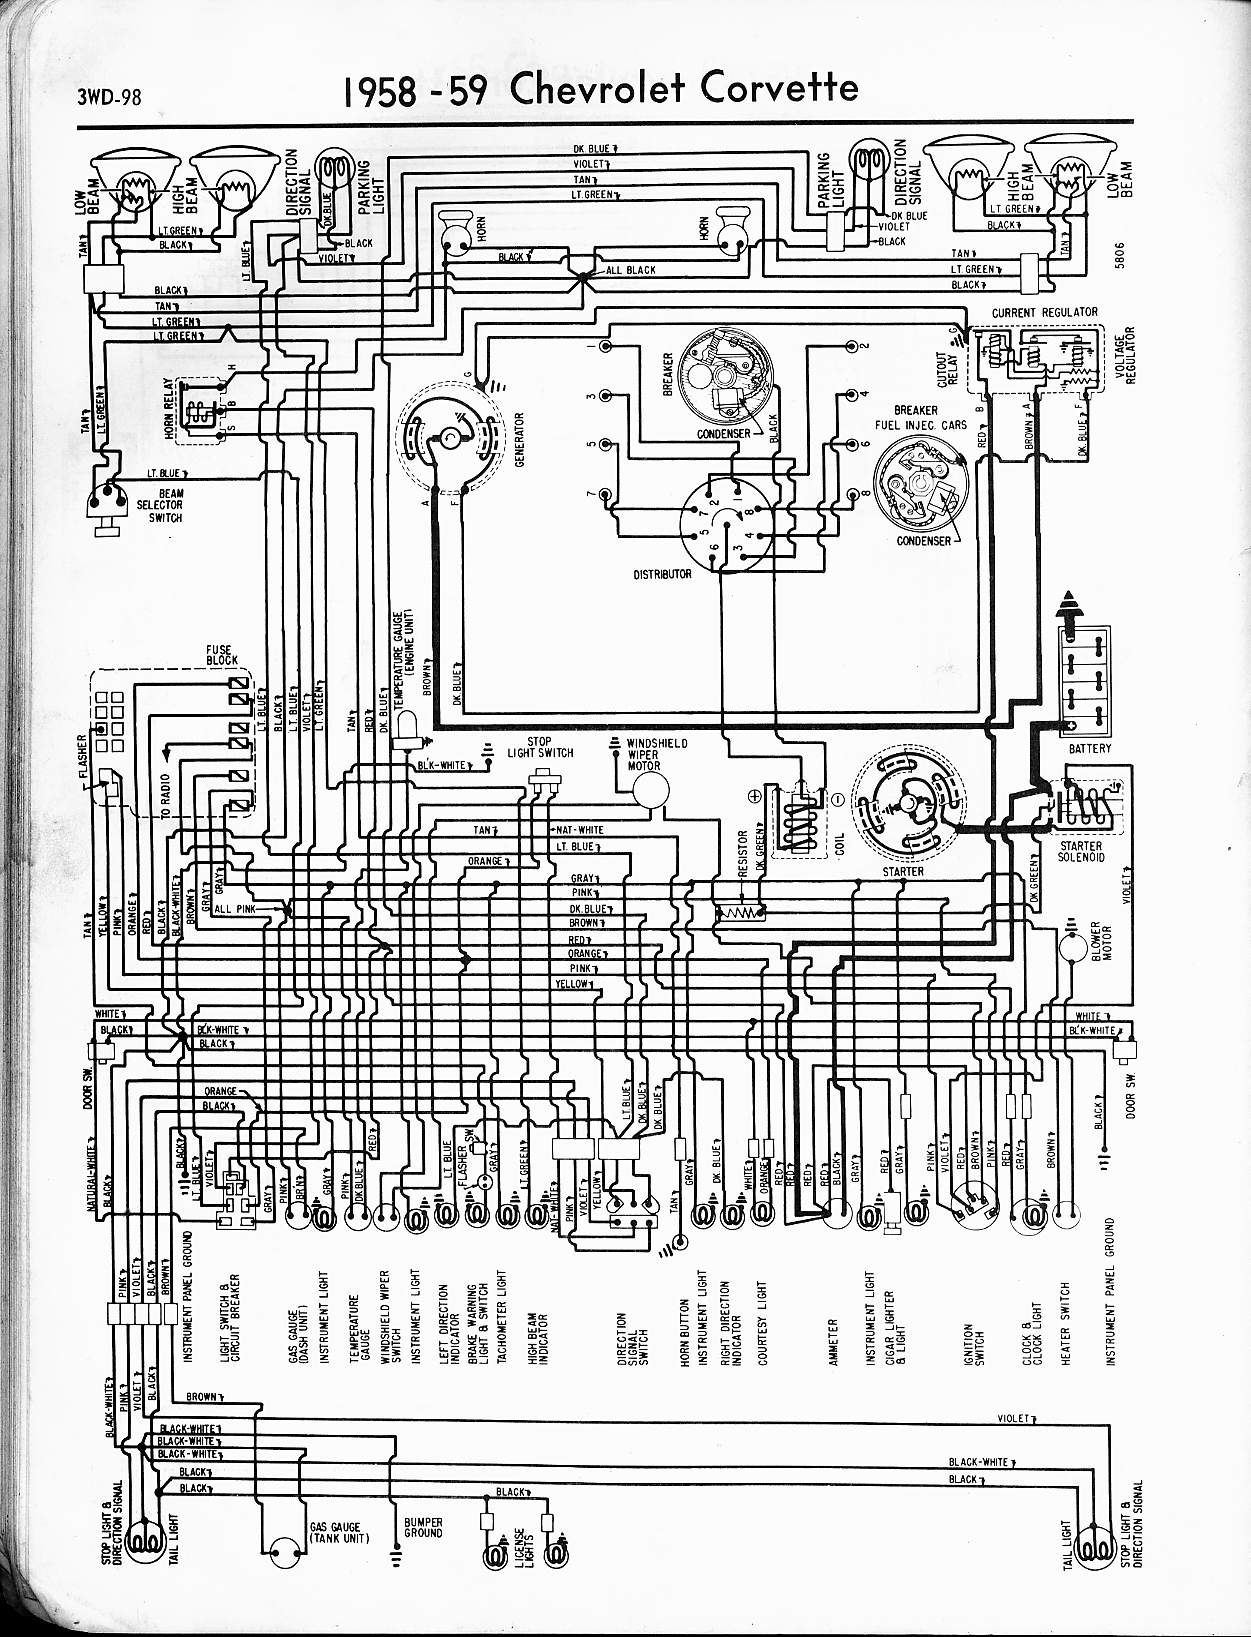 71 chevy 350 ignition wiring diagram online wiring diagram data1971 c10 wiring diagram wiring schematic diagram1969 chevy impala wiring diagram wiring schematic diagram c10 1971